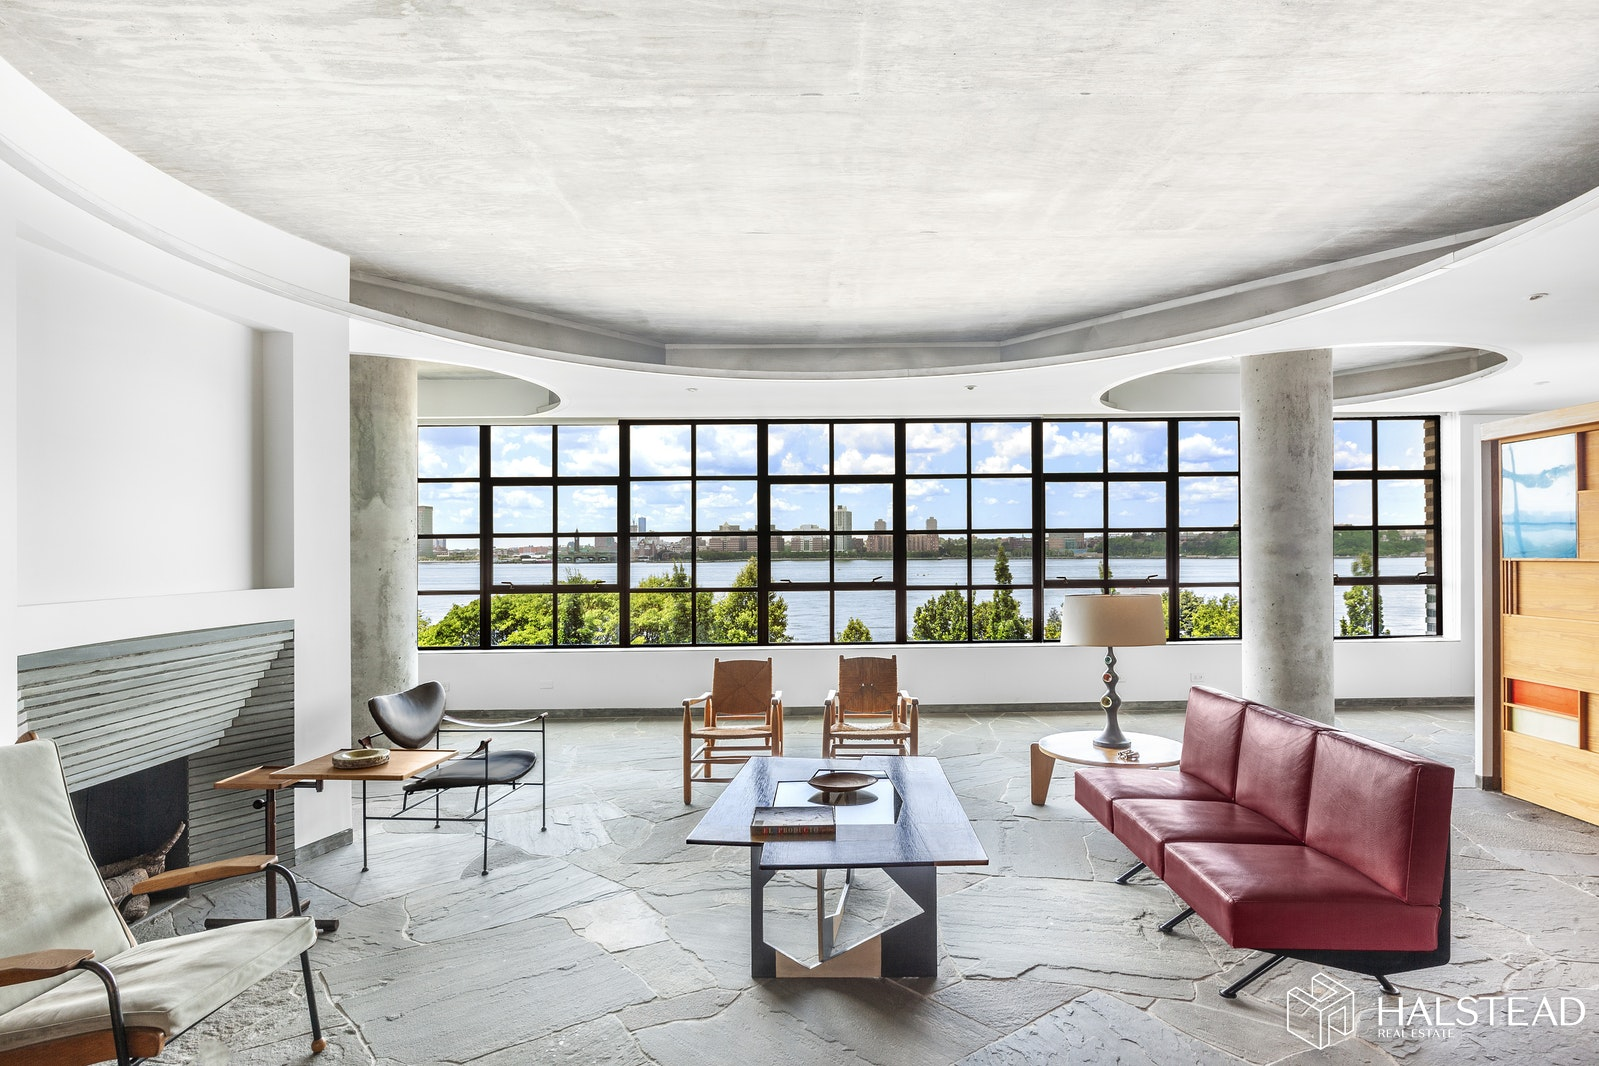 "Enjoy brilliant light and uninterrupted Hudson River views from 64-feet of continuous steel ribbon windows in this rare and sophisticated full-floor loft located in Carey Tamarkin's highly coveted 495 West Street - the ultimate private West Village waterfront address! Designed by Robert Marino and inspired by the French mid-century industrial aesthetic, this singular residence features an open flexible floor plan and is a study in the creative expression of architectural materials and the interplay of form and light. A keyed-elevator entrance leads to a dramatic sun-drenched entertaining space with heated bluestone floors, a wood-burning fireplace, a custom wet bar and mesmerizing water views as far as the eye can see. Concentric circles on the ceiling, underscored by concrete columns, pay homage to the great French designer Jean Prouve and define the flexible living areas below including a large Library with custom bookshelves and a sun-filled lounge, both of which can easily be reconfigured into second and third bedrooms. The oversized eat-in-kitchen, with expansive views of the river and lush tree-tops of the Hudson Waterfront park, offers custom milled cabinetry and state-of-the-art appliances. The spacious and bright corner Master Bedroom suite is a serene sanctuary with a large walk-in closet and a windowed en-suite Master Bath, both in keeping with the home's mid-century design vision. The entire loft exudes a sense of calm and stillness enhanced by the meditative effects of the ever-changing Hudson River with its magical sunsets and the twinkling lights of the New Jersey shoreline in the distance. Additional amenities include multi-zoned central air-conditioning, a separate laundry room, copious amounts of storage, and custom Lutron lighting on dimmers throughout.All this, in a rare, full-floor boutique condominium on the Far West Village's ""Gold Coast,"" where residents enjoy protected views of the Hudson River and the kind of privacy and anonymity that are ensured by a key-locked elevator and 24-hour doorman. The building is located directly across from the Hudson Waterfront Park and is steps from the cobblestone charm of the historic West Village, the sought-after restaurants and boutiques of the Meatpacking District, The Whitney Museum, The High Line, and all that is Downtown. Truly one-of-a-kind!"